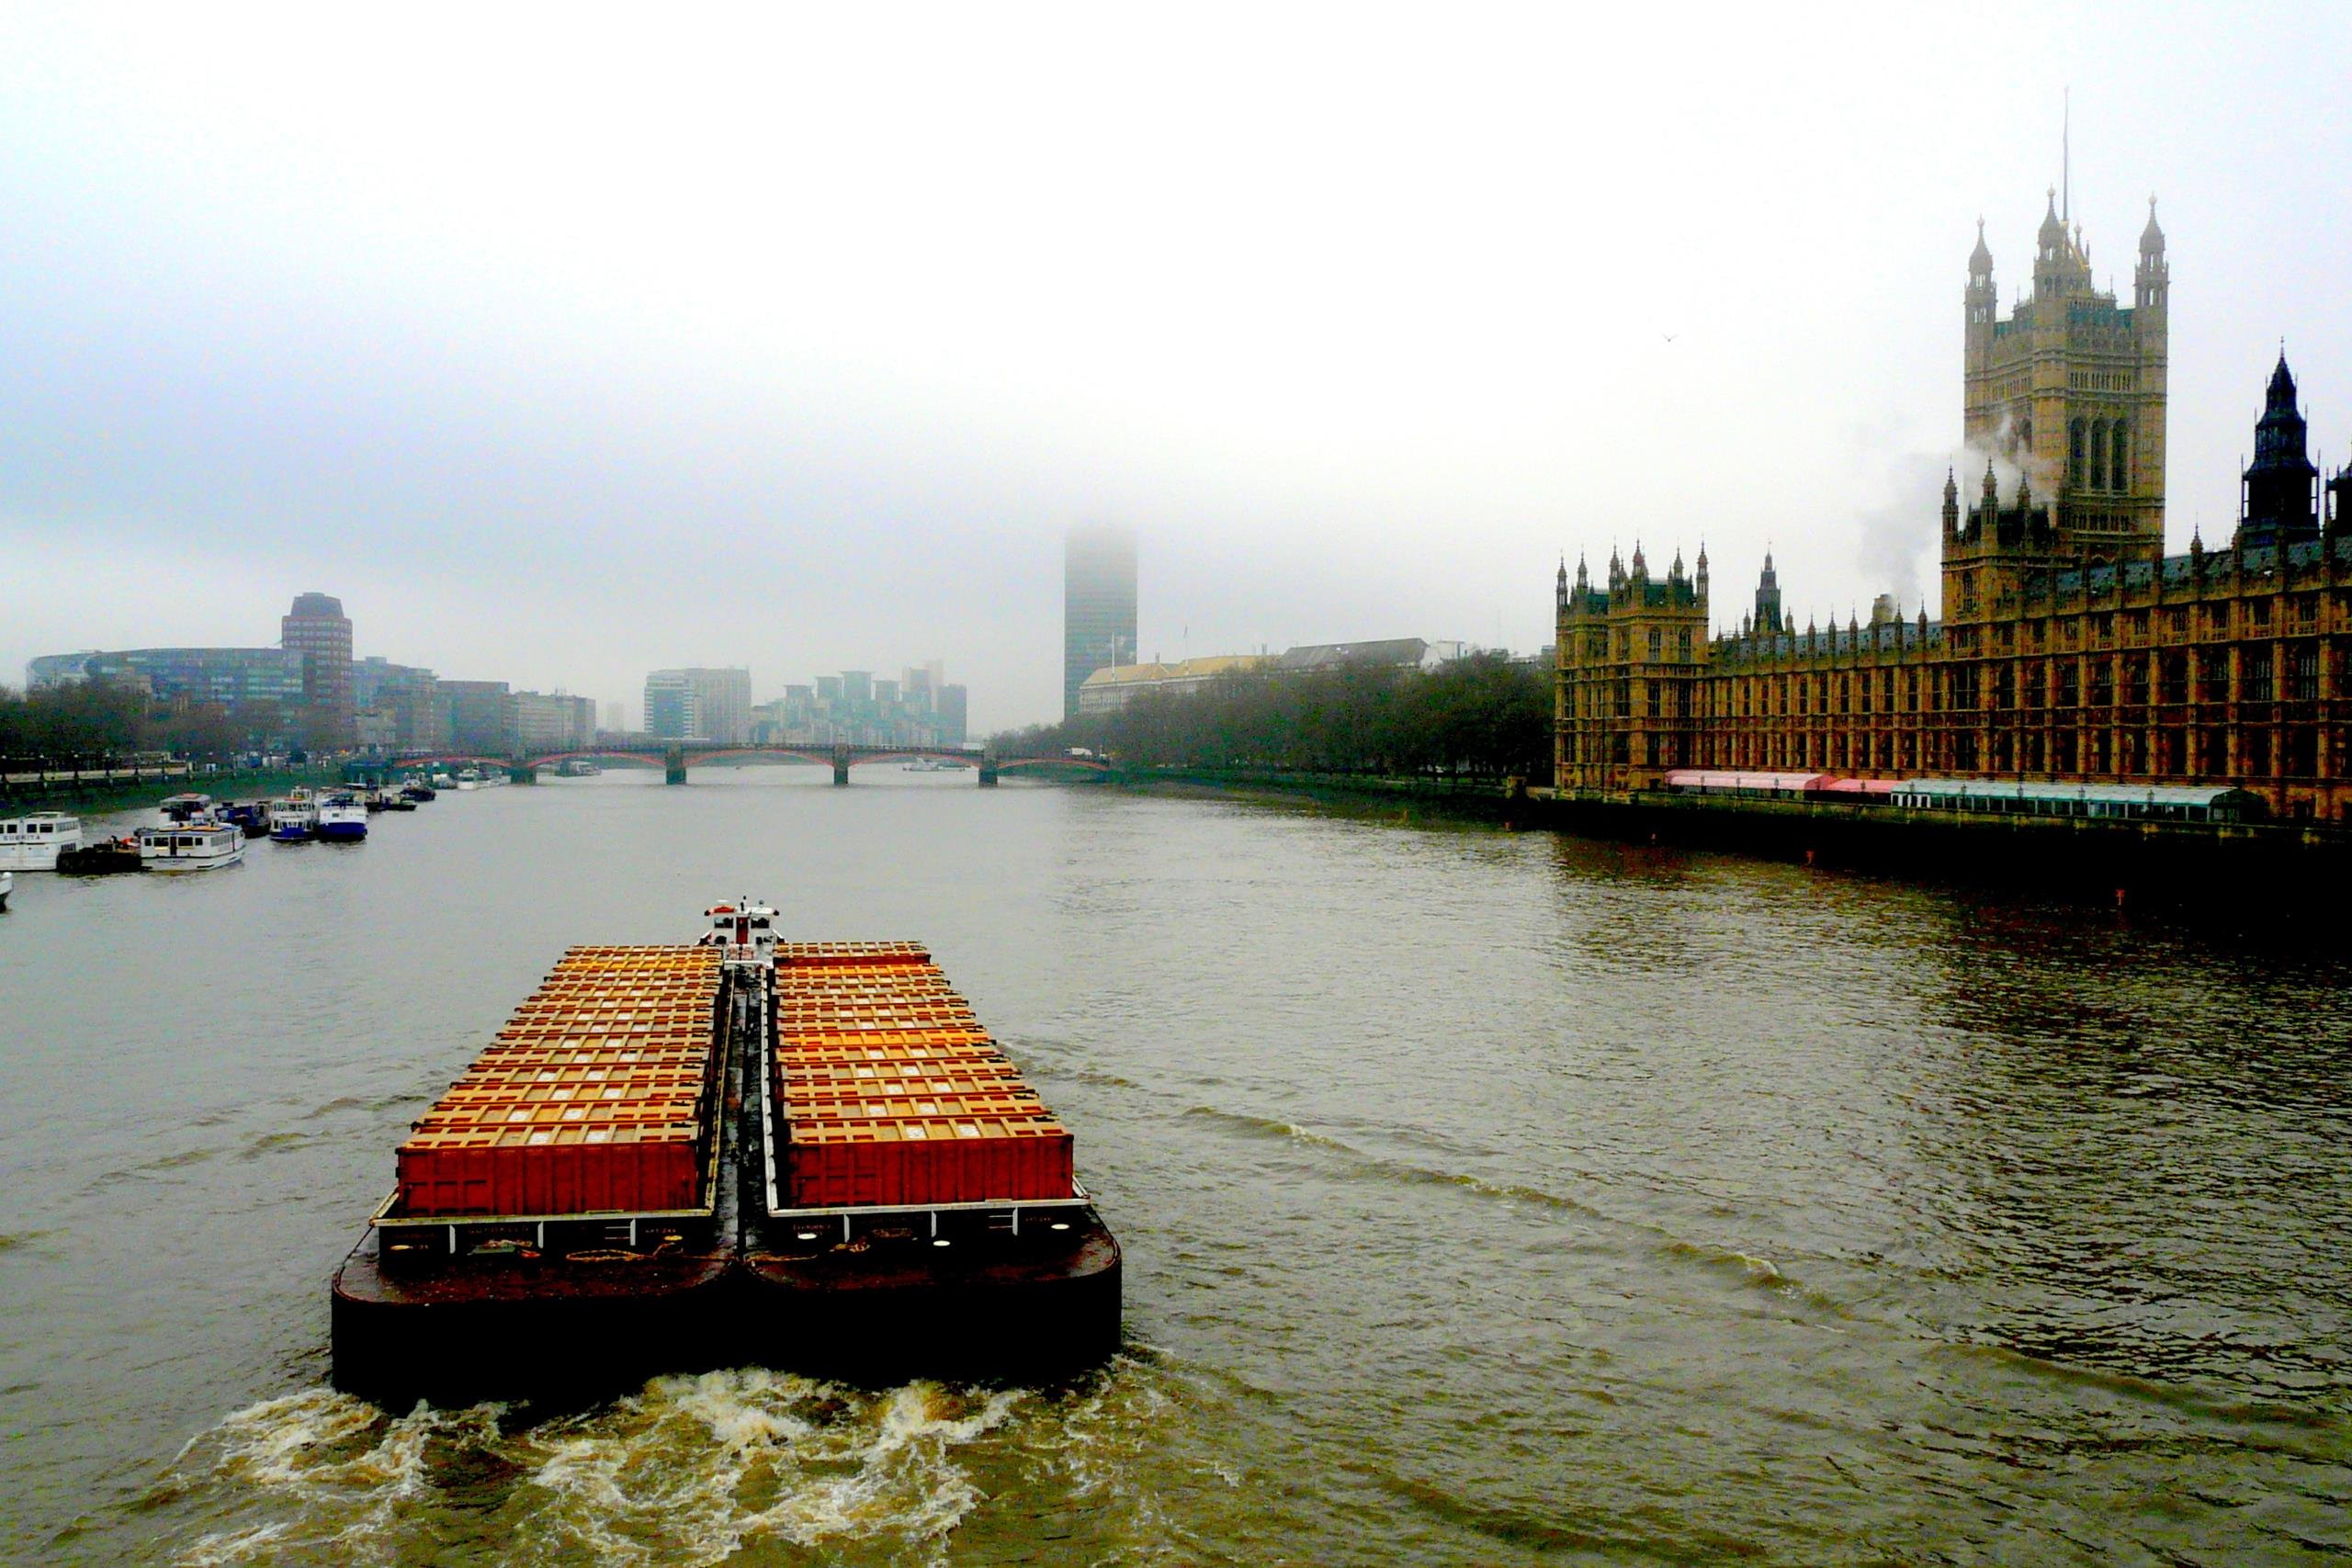 Boat pulling cargo on The River Thames